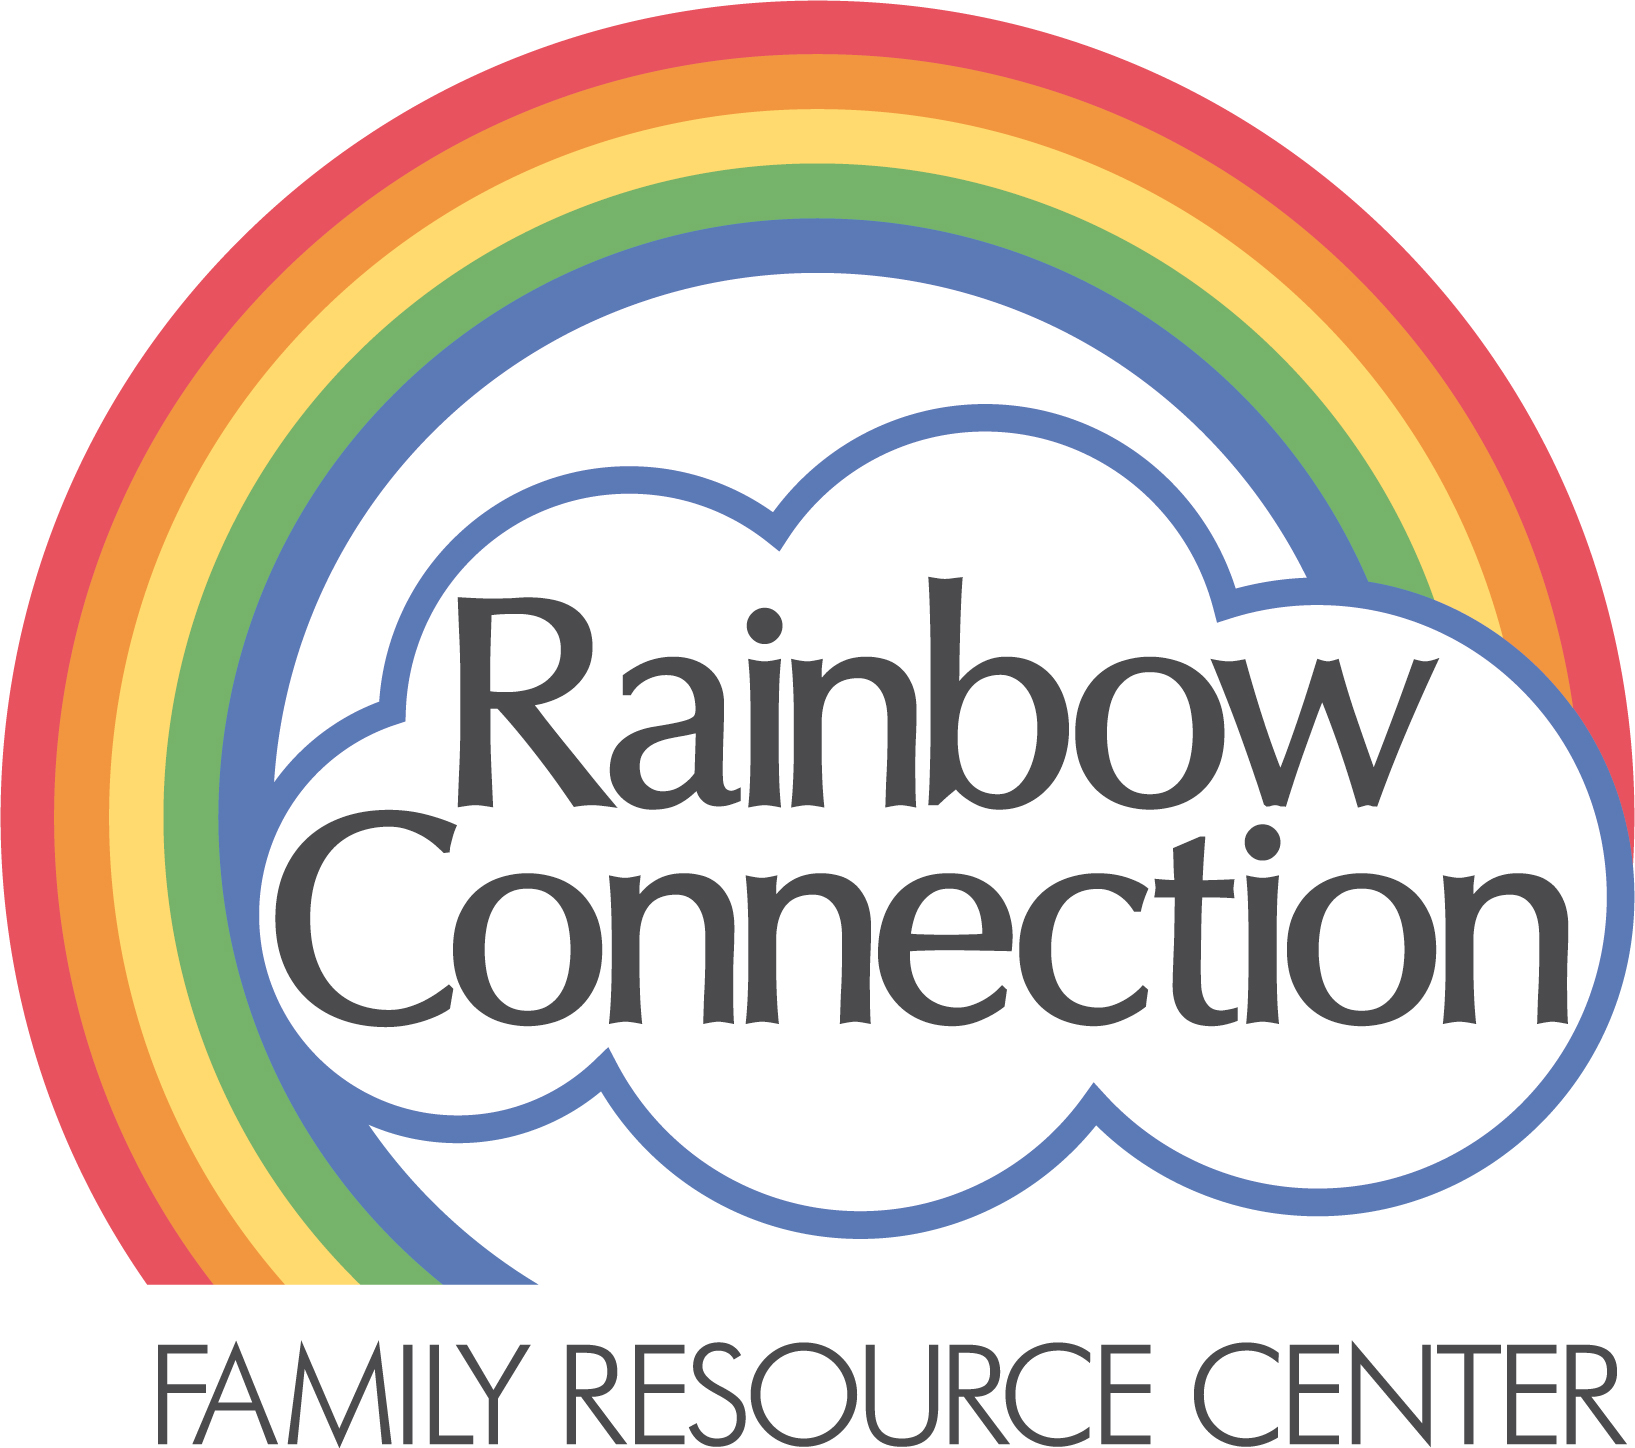 Rainbow connection family resource center logo